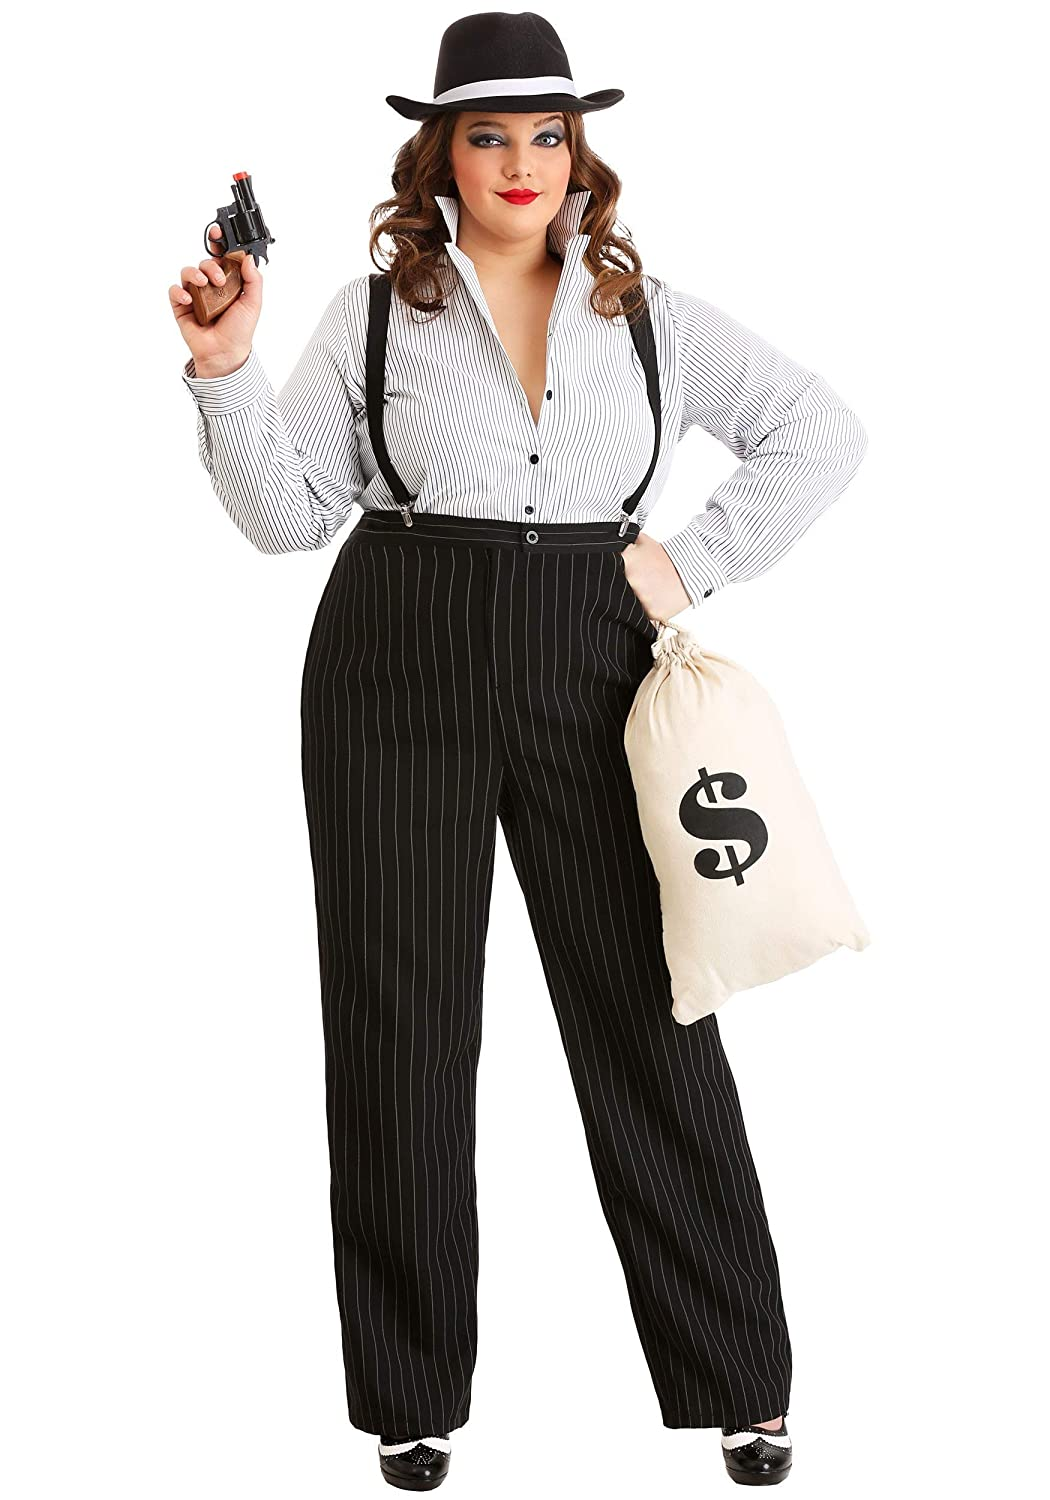 1920s Style Women's Pants, Trousers, Knickers, Tuxedo 1920s Gangster Lady Costume Plus Size $44.99 AT vintagedancer.com